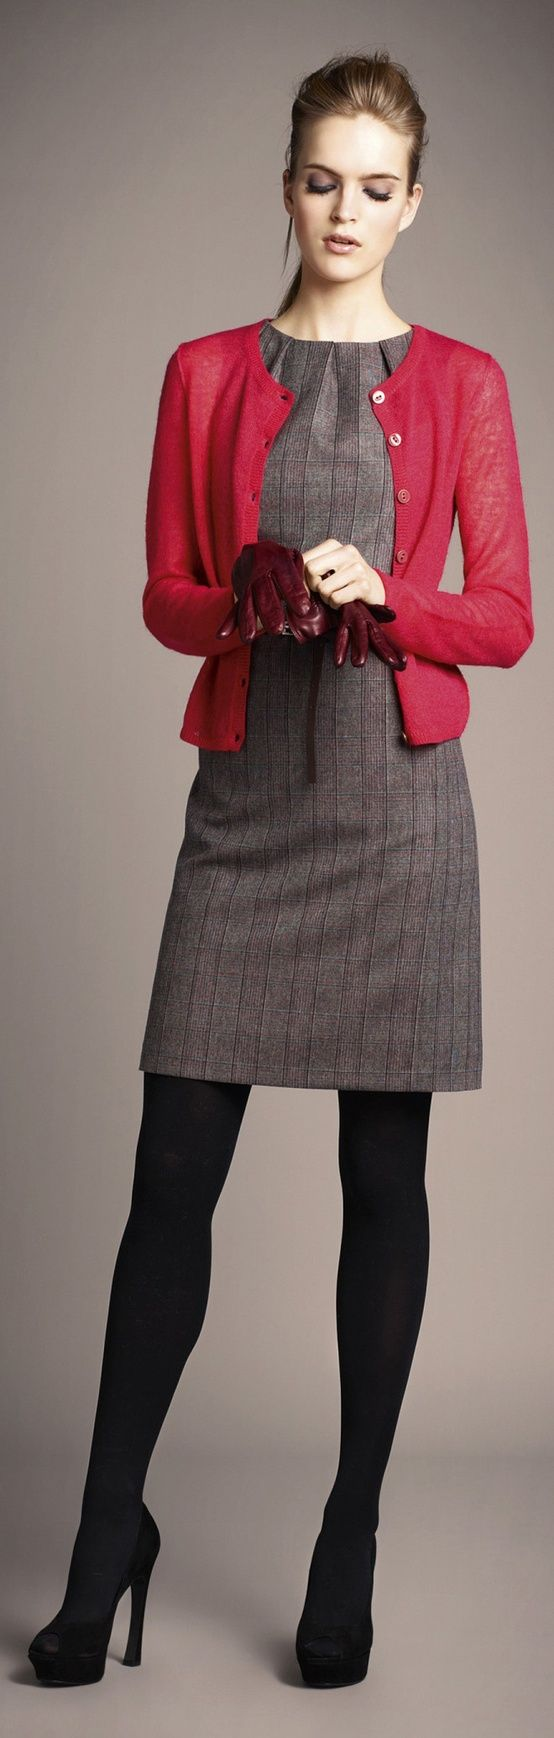 Red Cardie with Grey Sheath and Black Tights